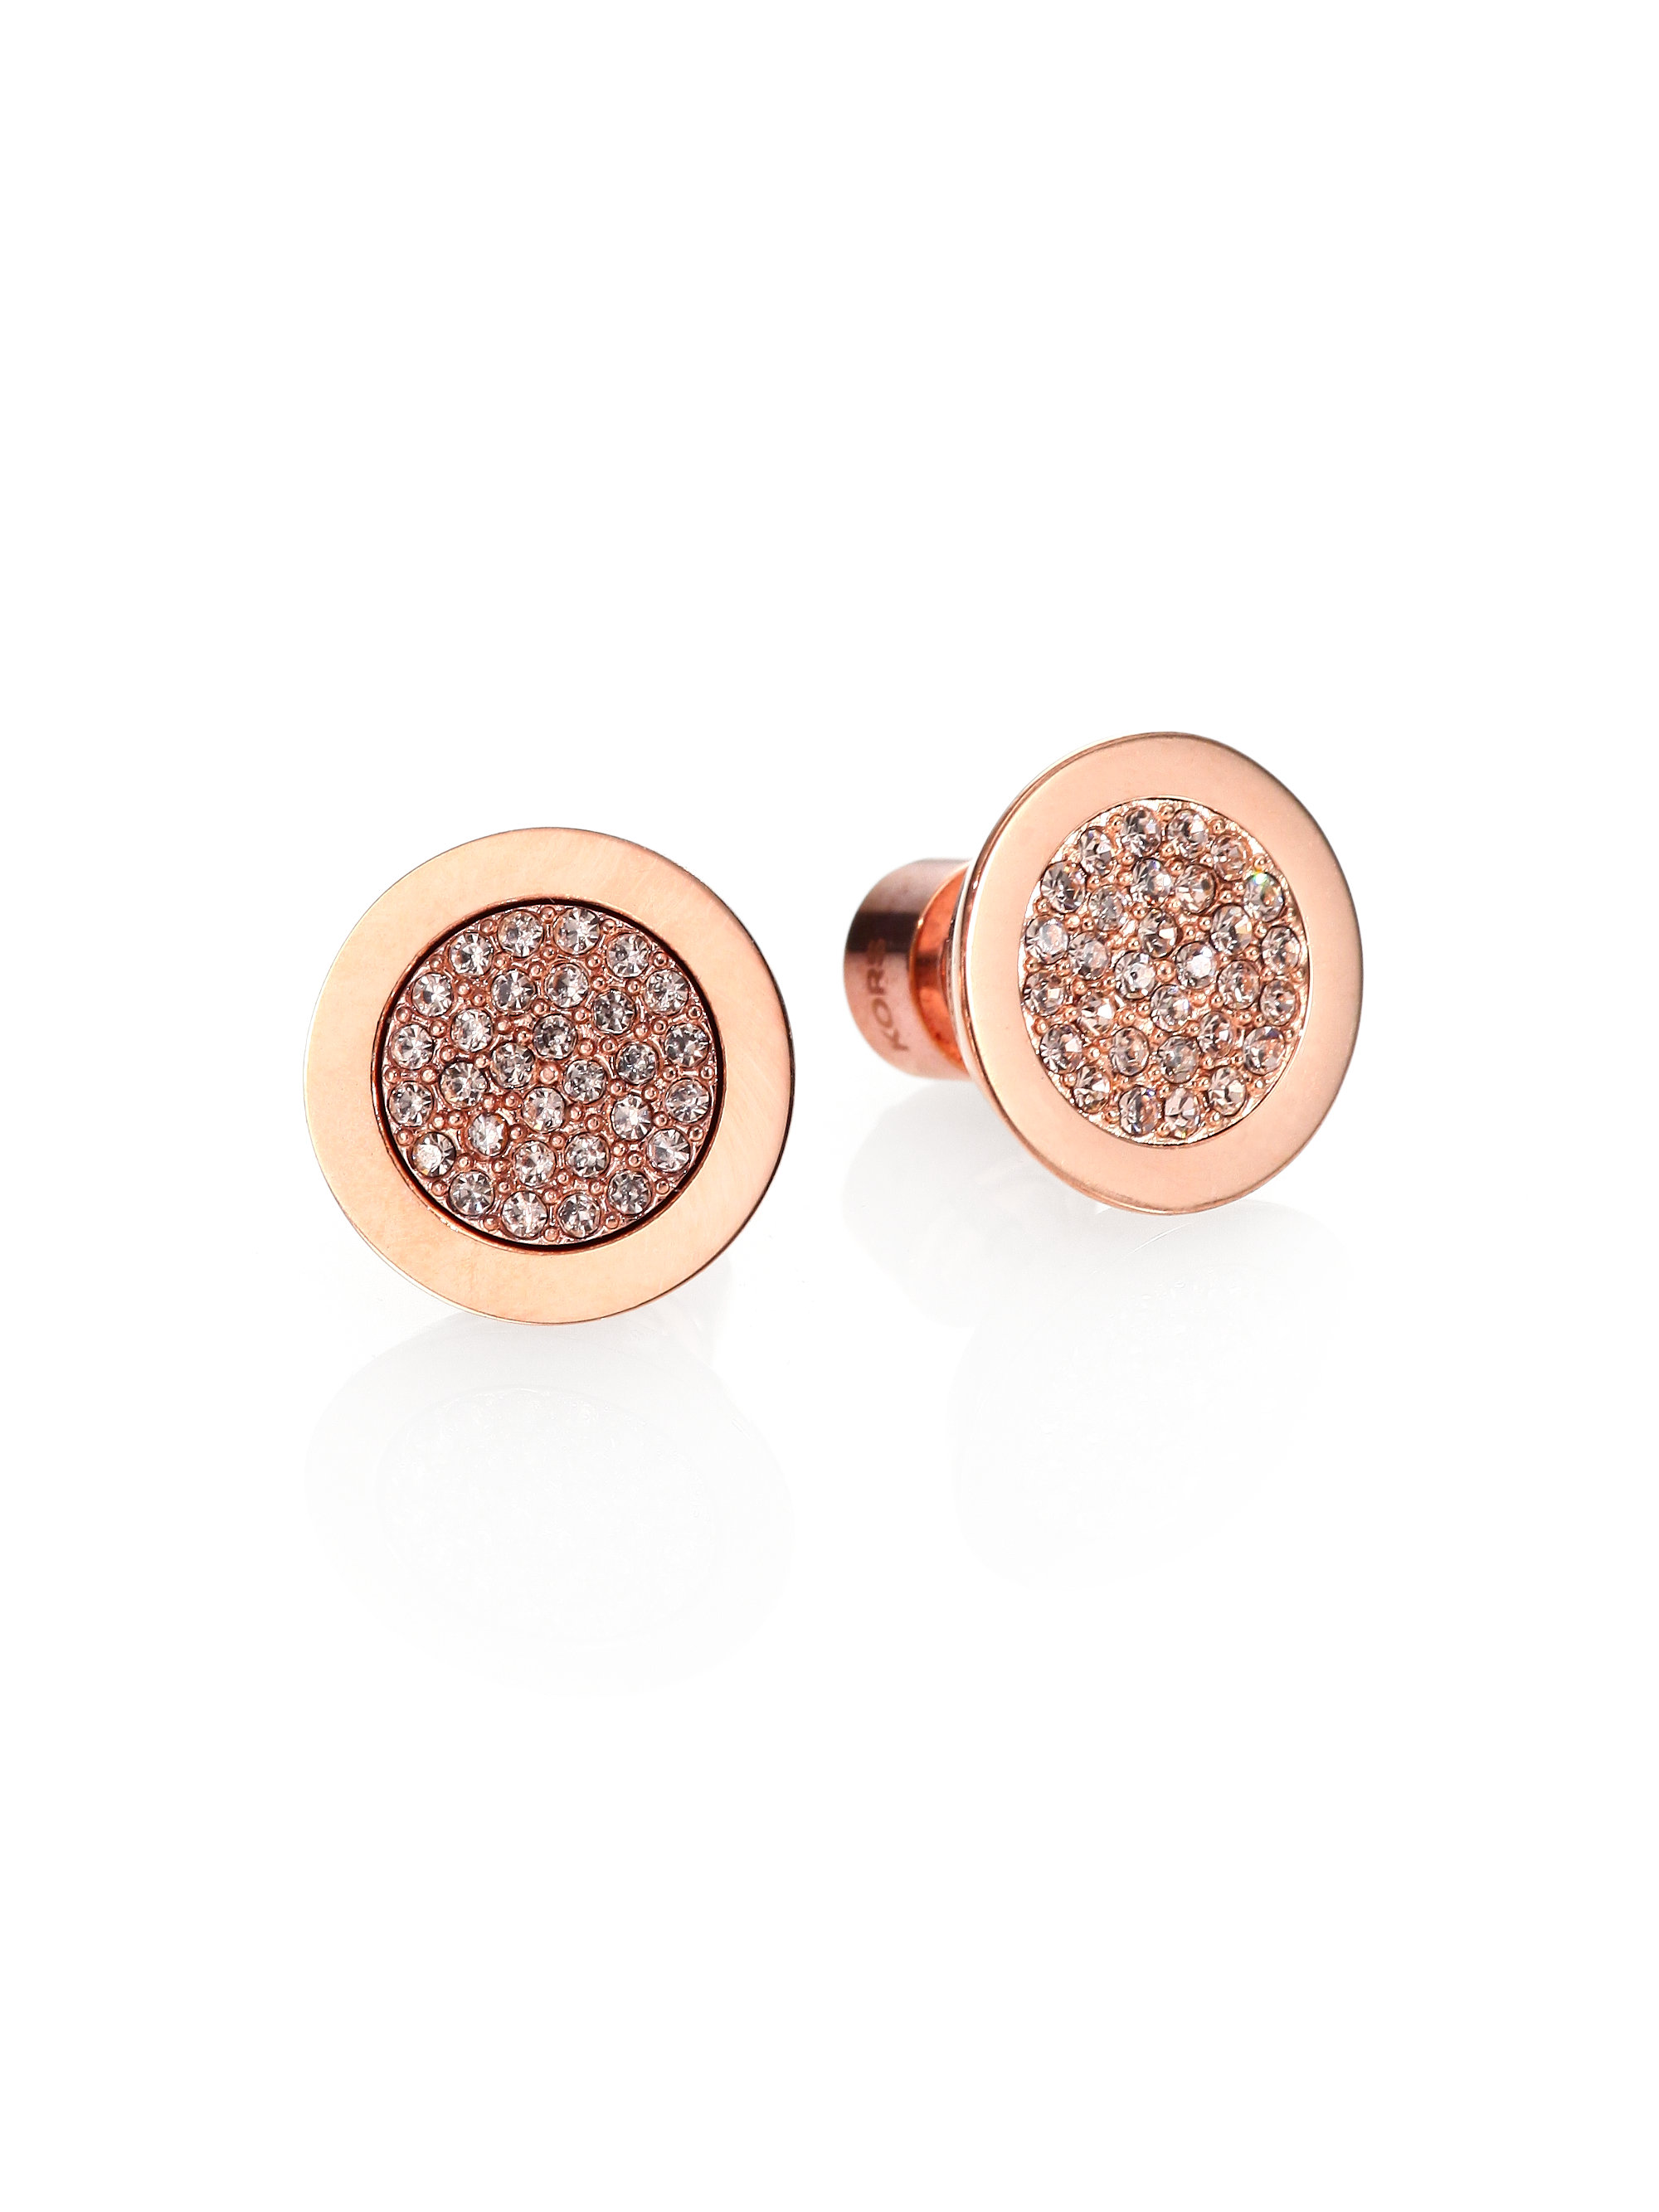 Lyst Michael Kors Pav Eacute Slice Stud Earrings Rose Goldtone In